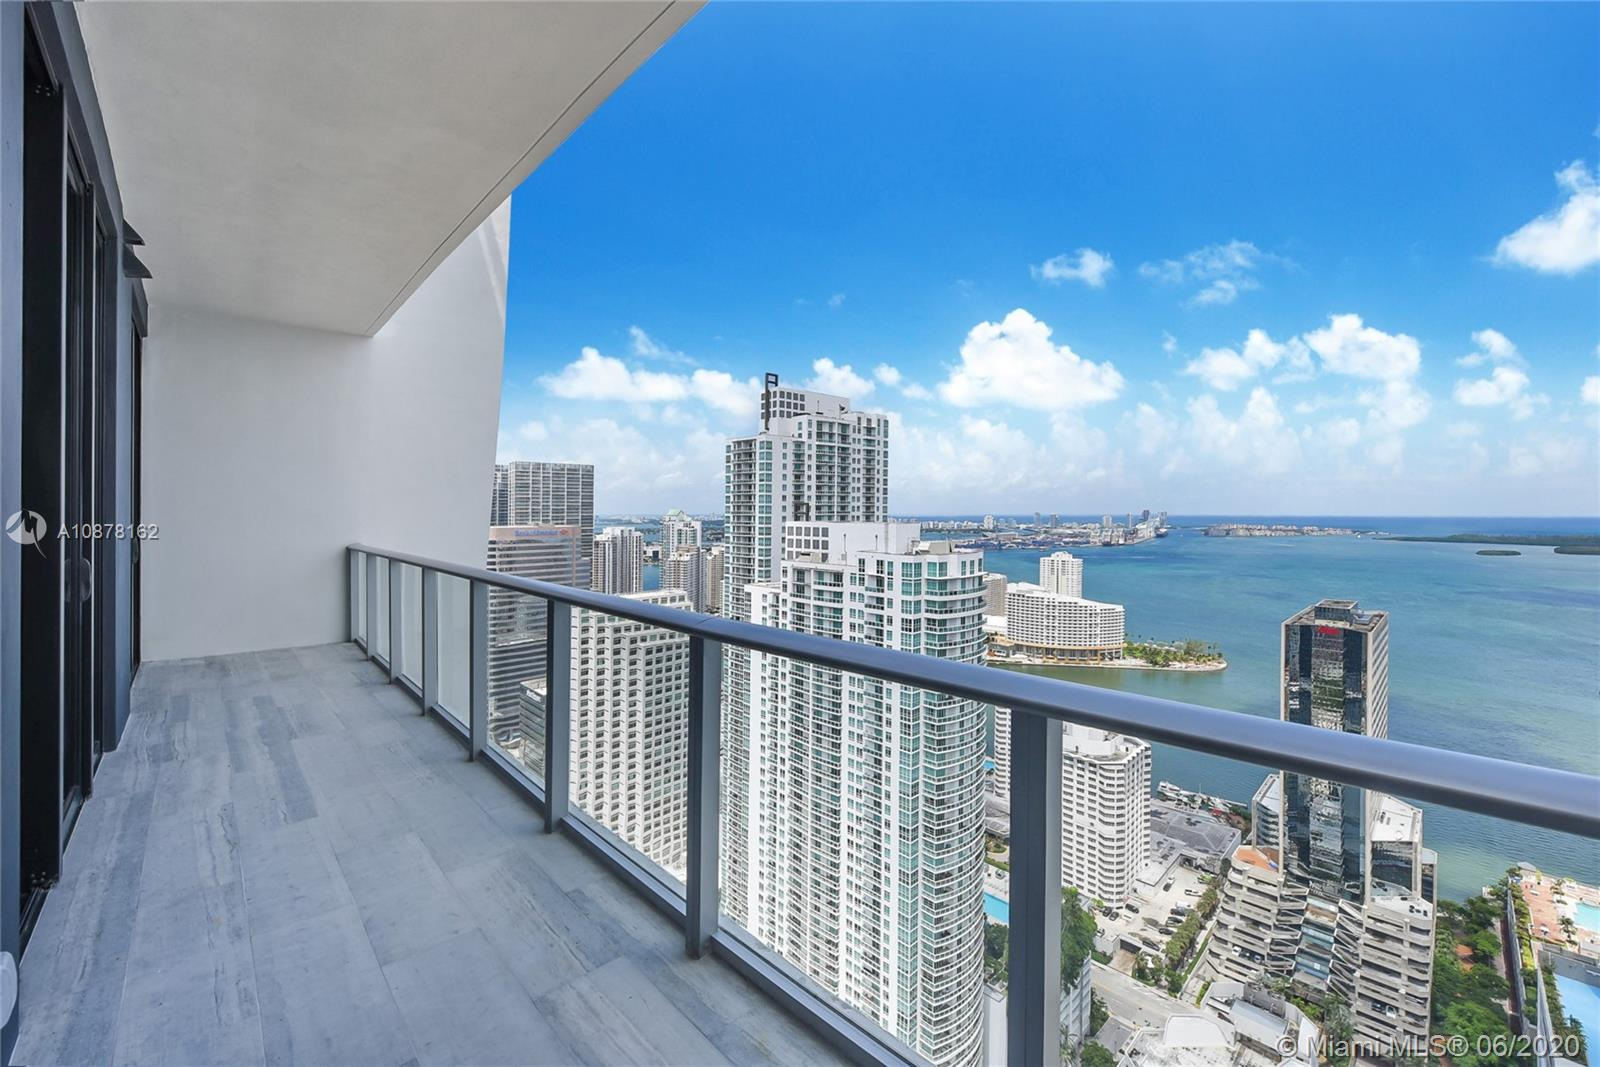 Lower penthouse in the most sough-after new building in Brickell. Unit has 12 feet ceilings, unobstrocted Biscayne Bay views, 2 bedrooms plus a big den, 3 full bathrooms and elevator opens directly to the unit. Completely finished with Opustone Alzata marble floors, custom made closets in all bedrooms, custom made electrical shades and top of the line appliances.  Unit is currently rented until May 2, 2021 at $4,250 monthly. Upgrades throughout.